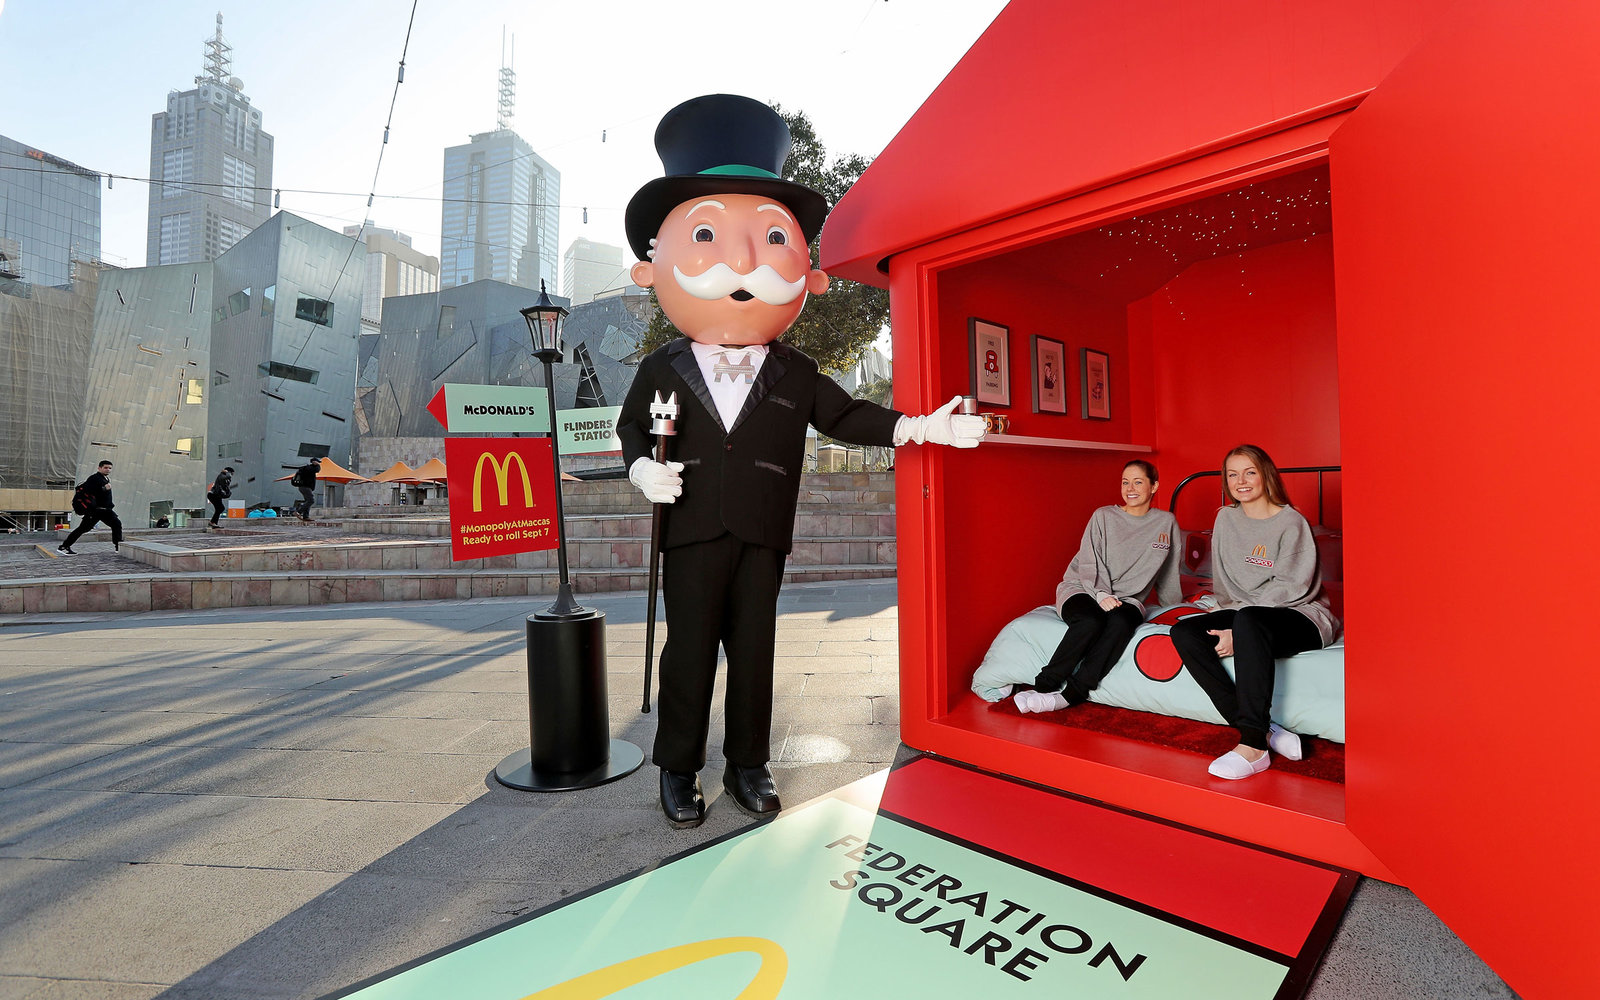 mcdonald's monopolyhotel in melbourne